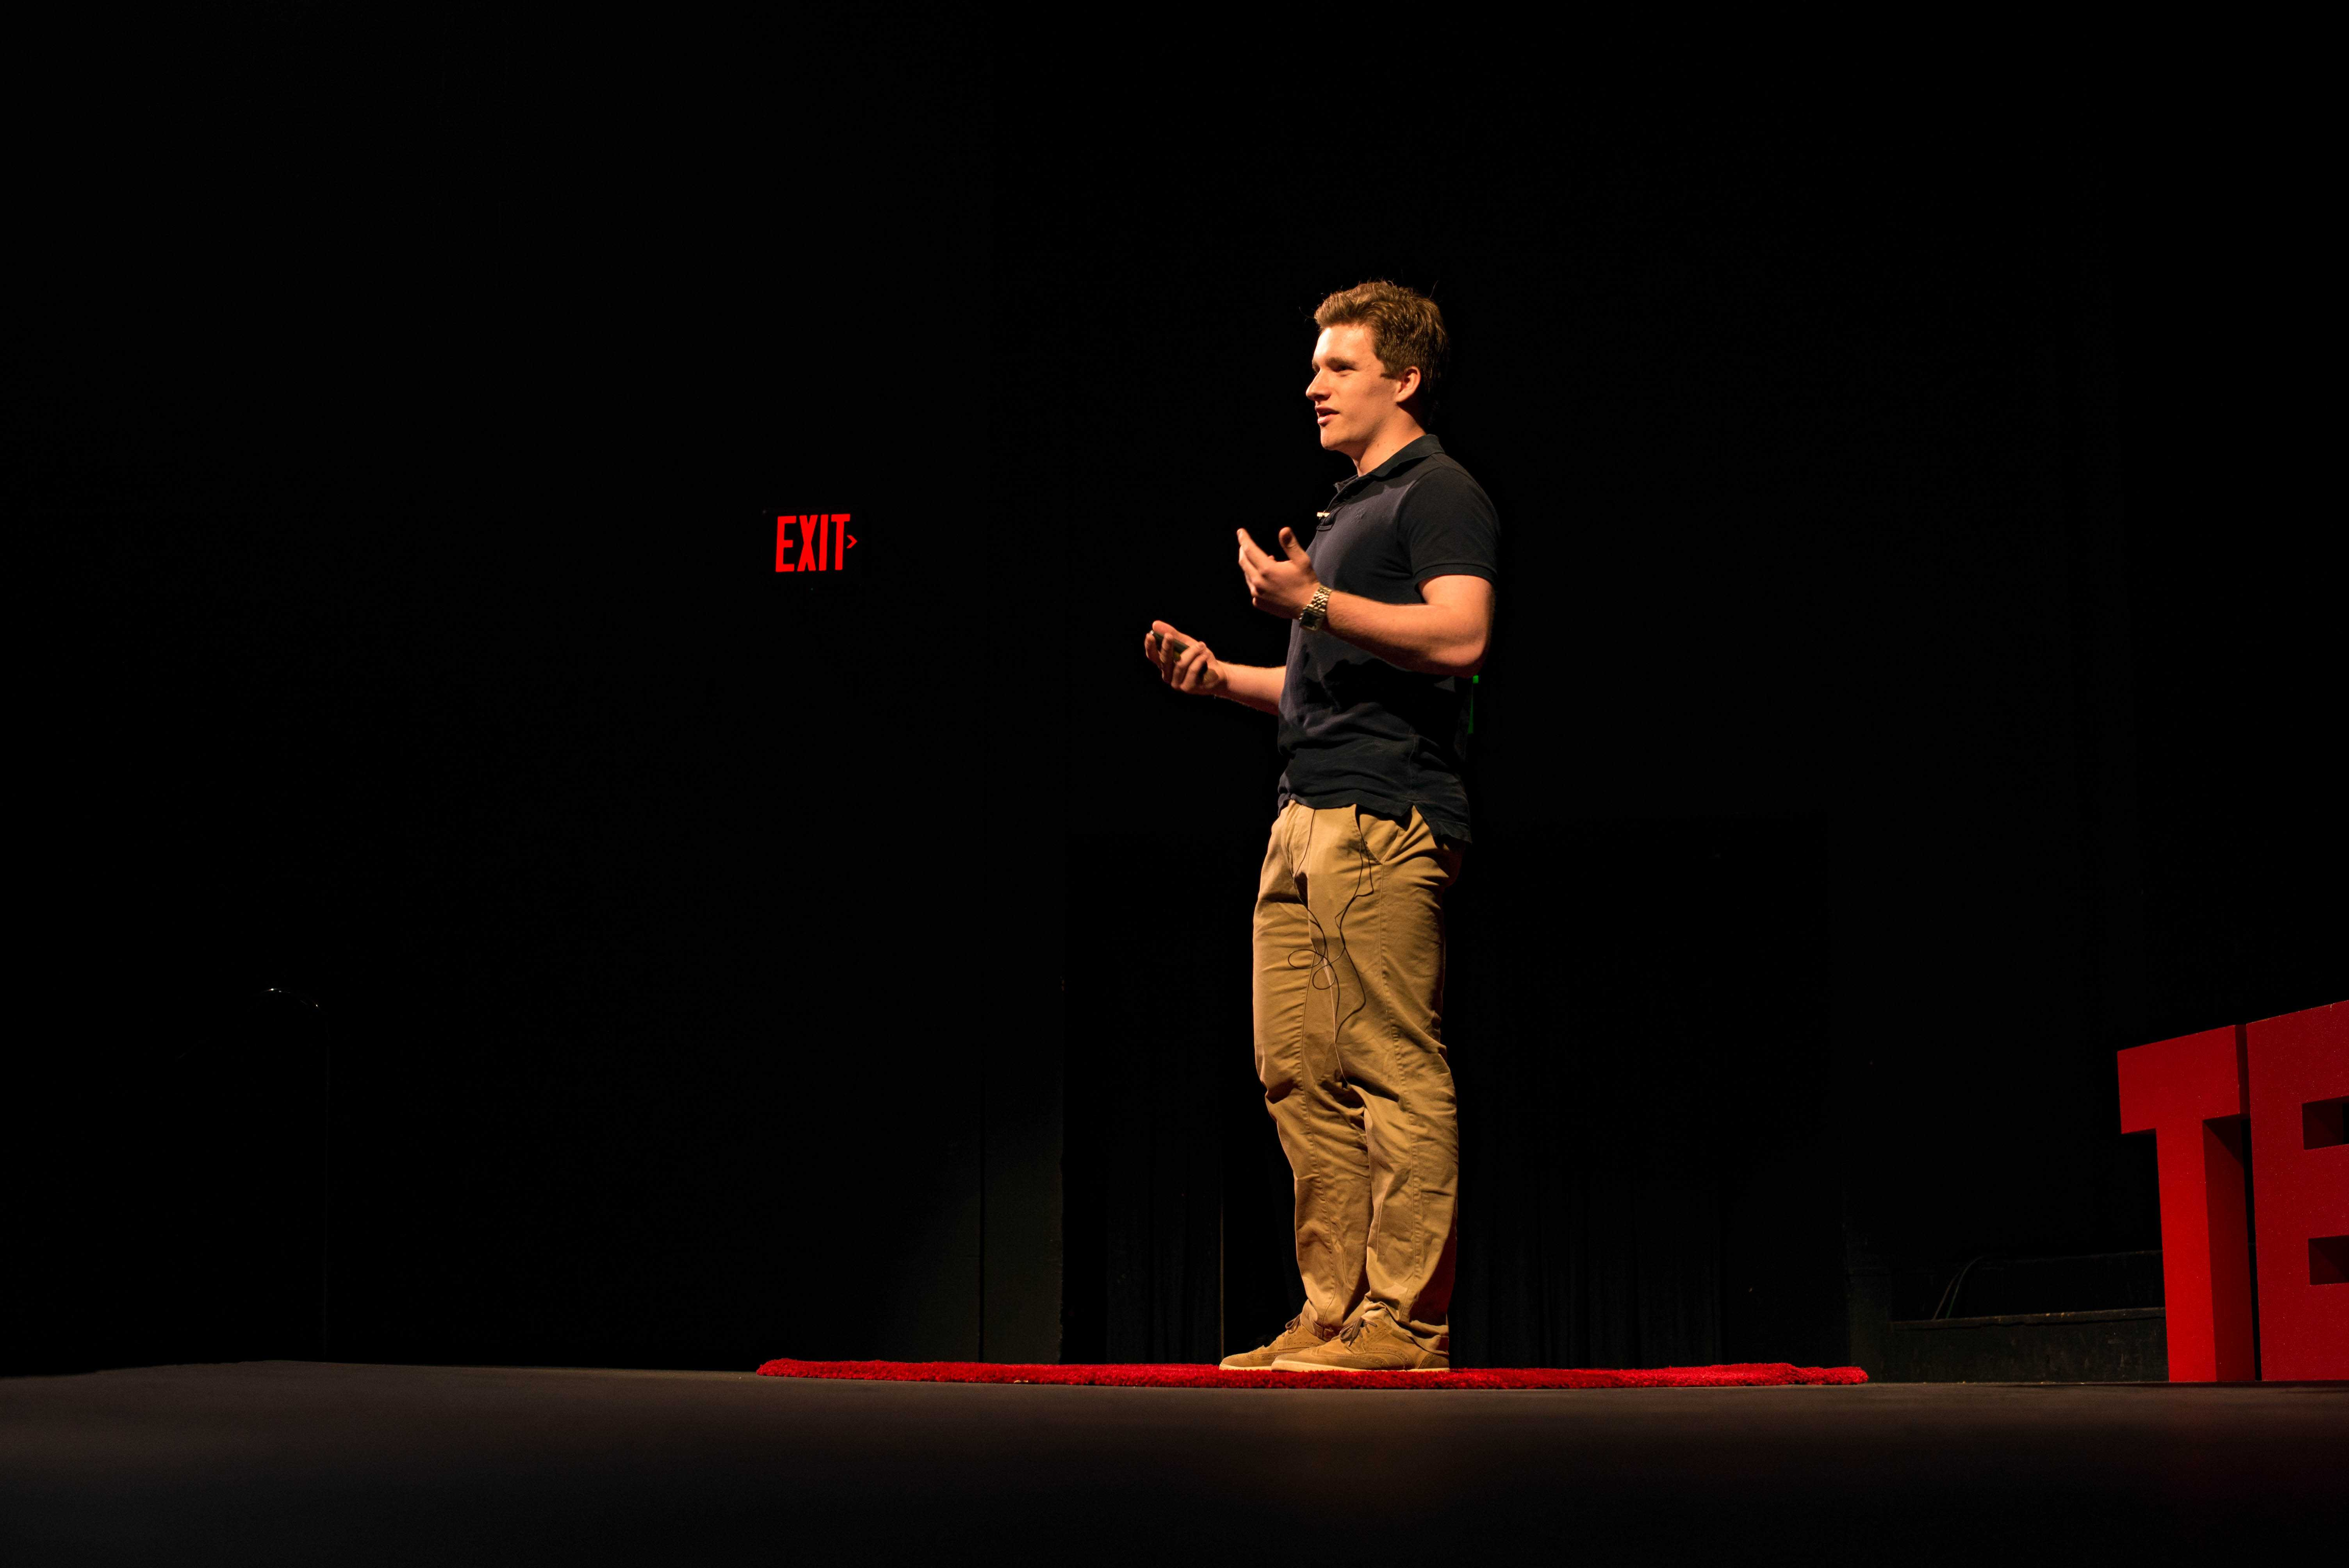 Annual TEDx conference features range of topics, speakers